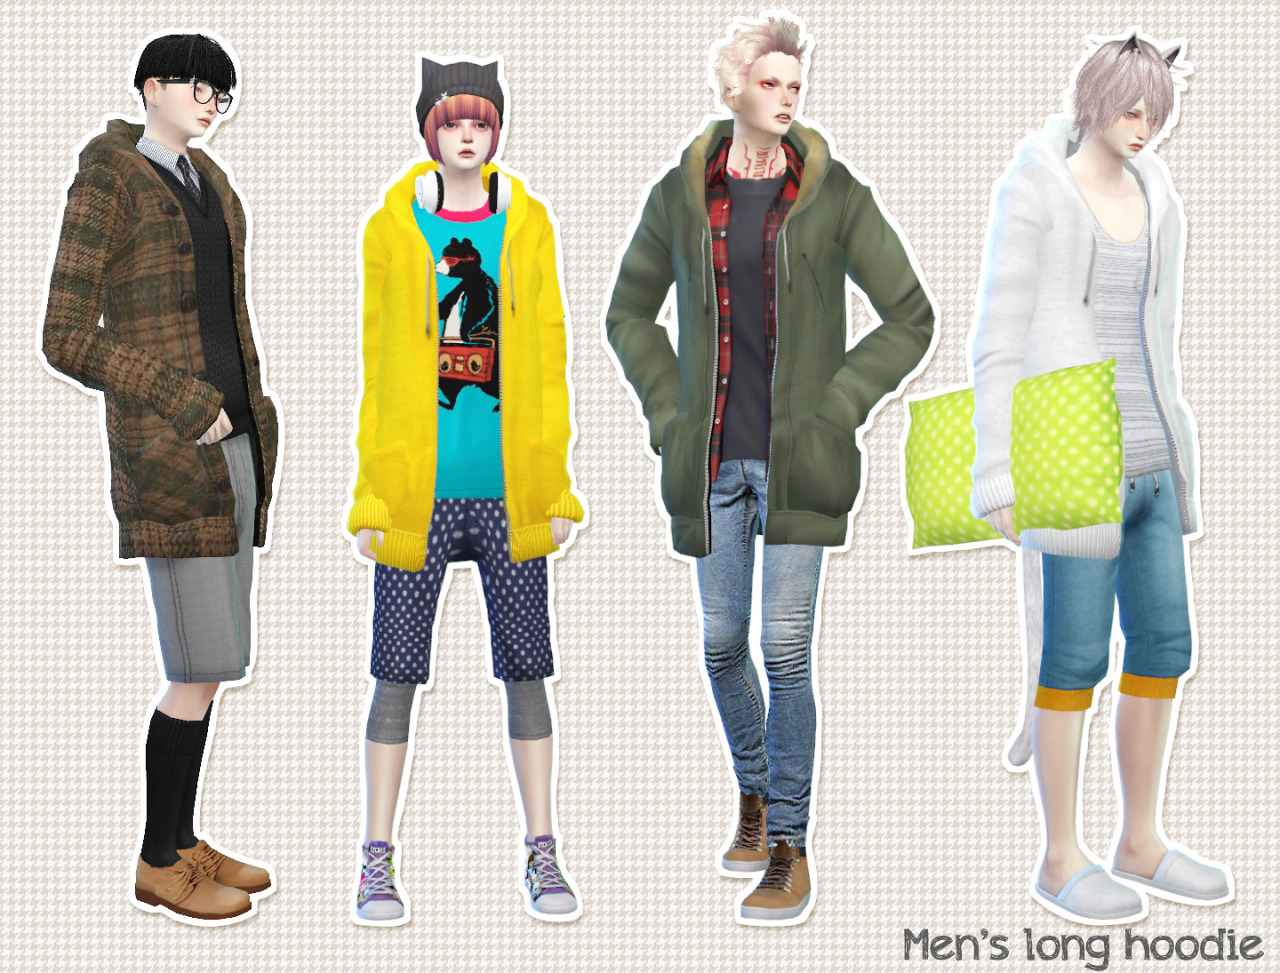 Accessory Long Hoodie for Males by Imadako